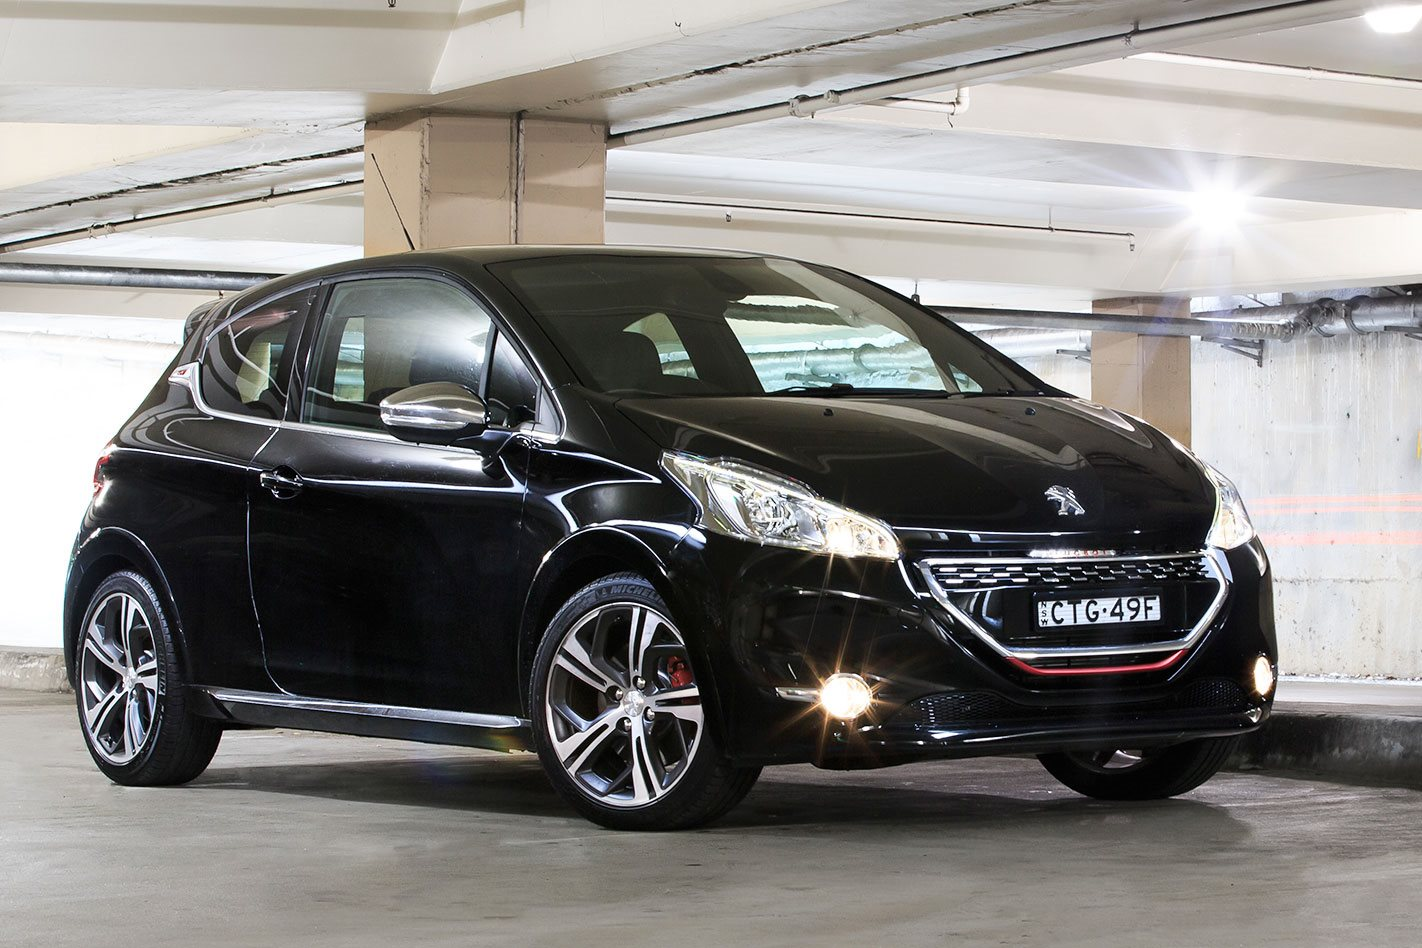 2014 Peugeot 208 Gti Long Term Car Review Part 1